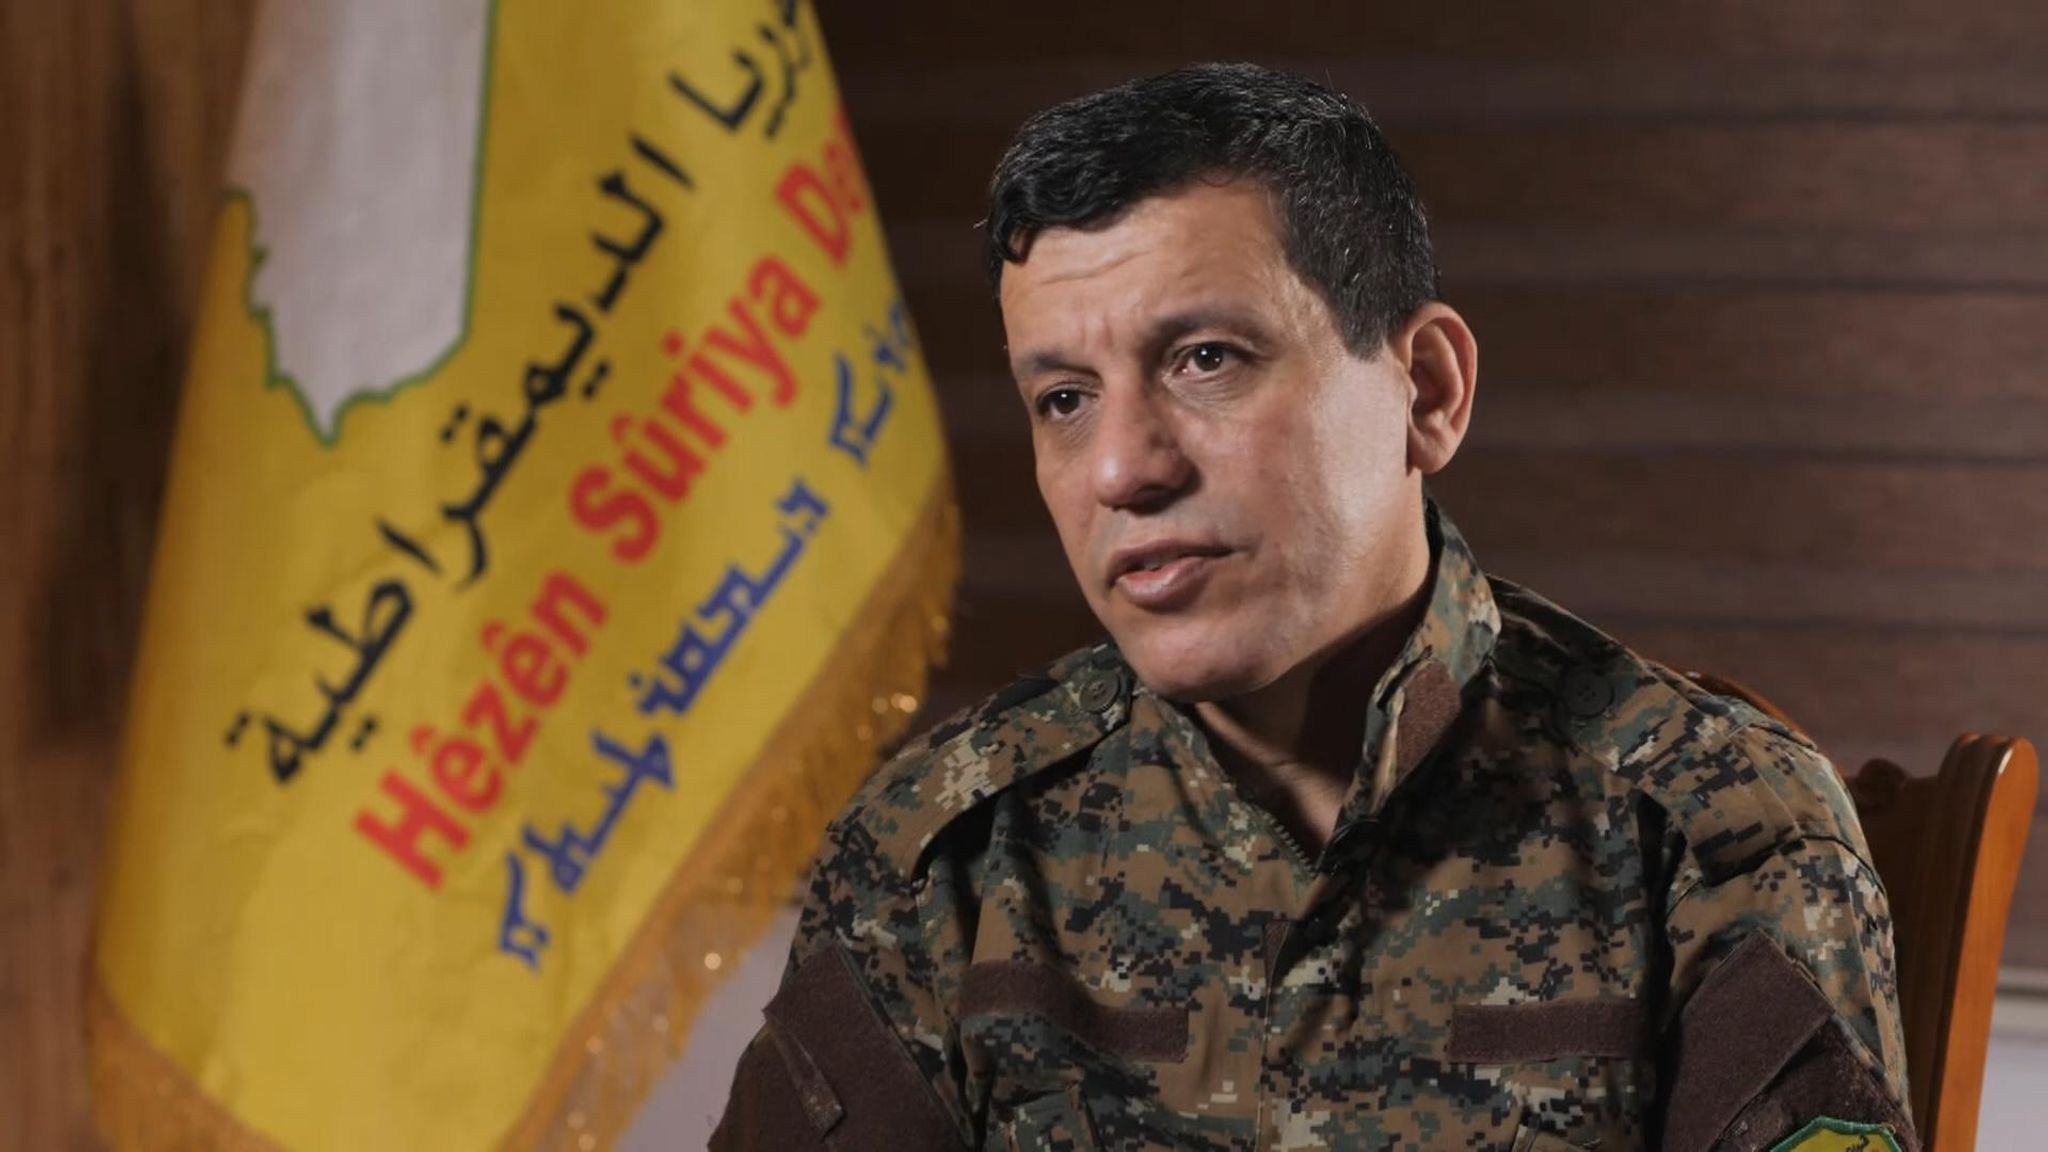 Major terror attack in West 'expected' over Syria inaction, Kurdish general warns